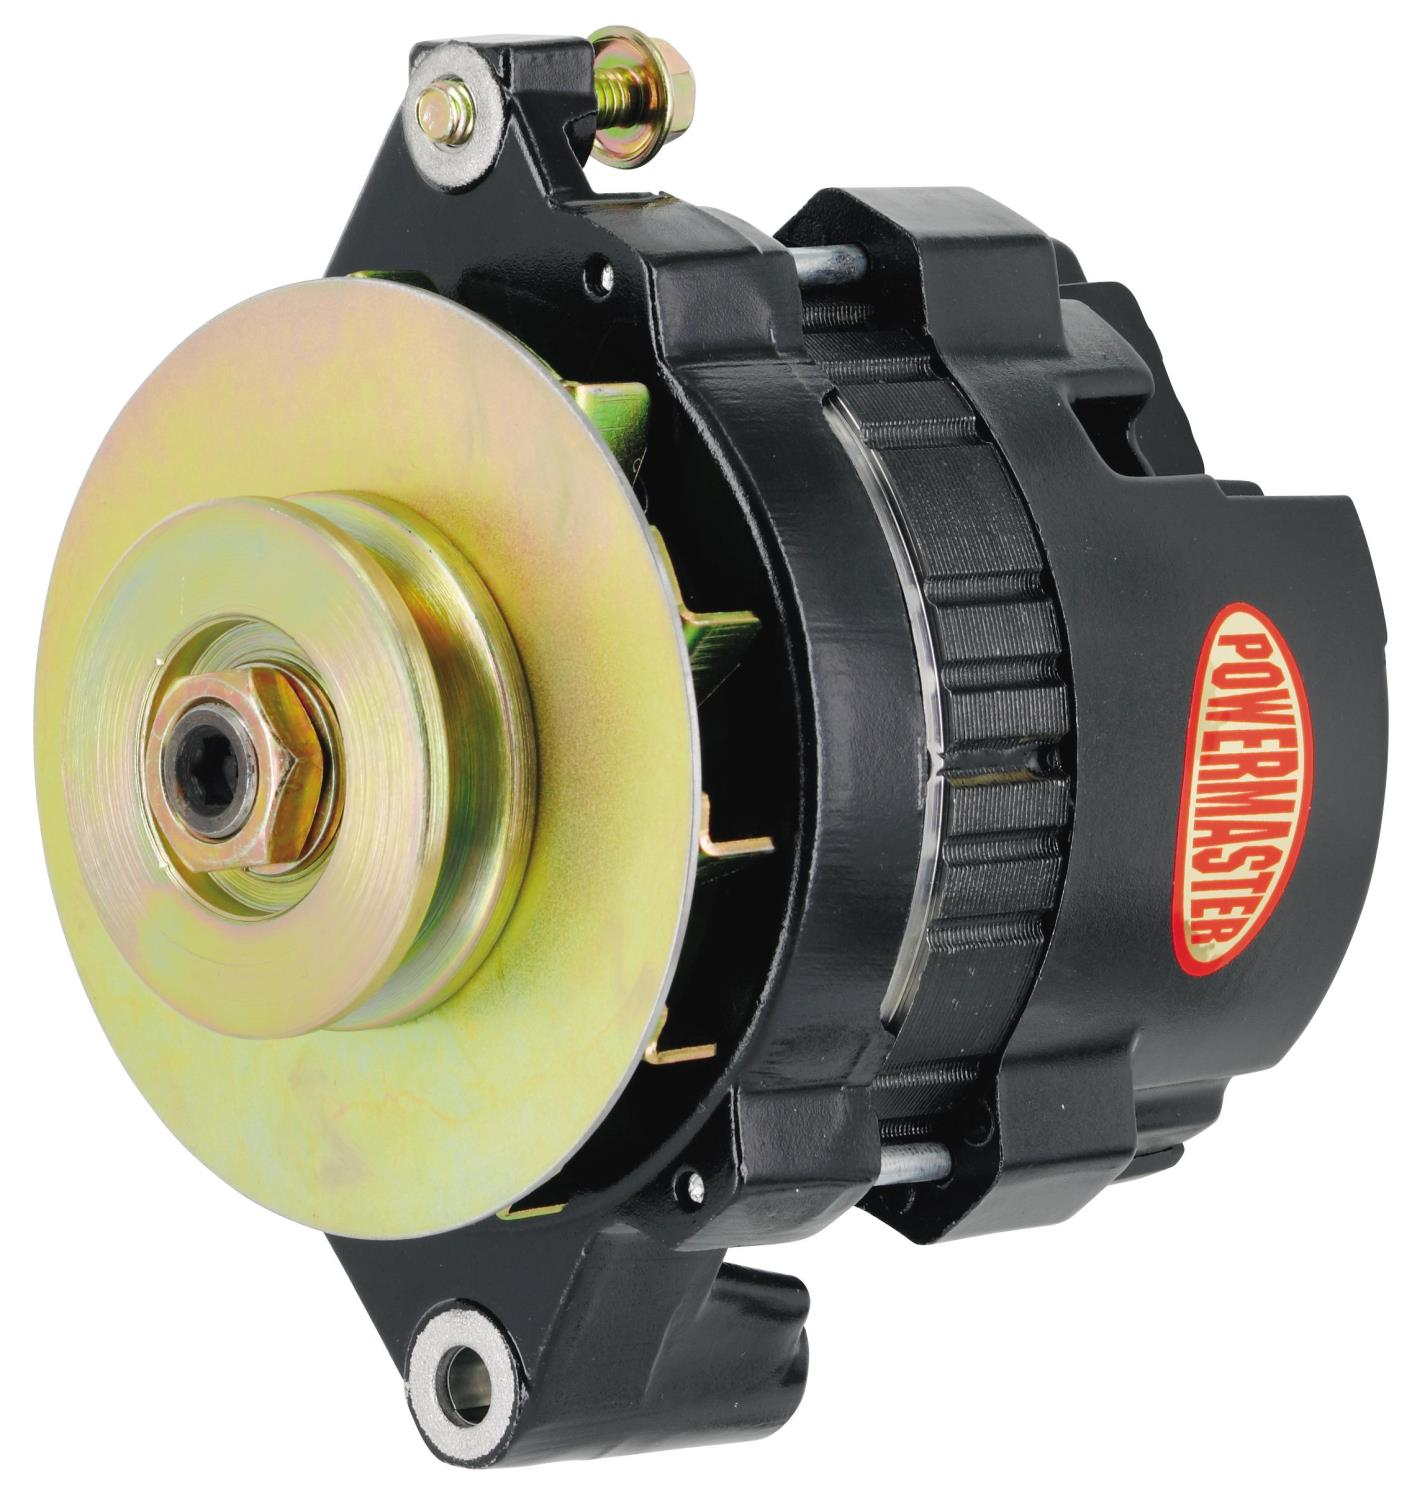 Powermaster 8466 - GM 5x5 Compact Race Alternators